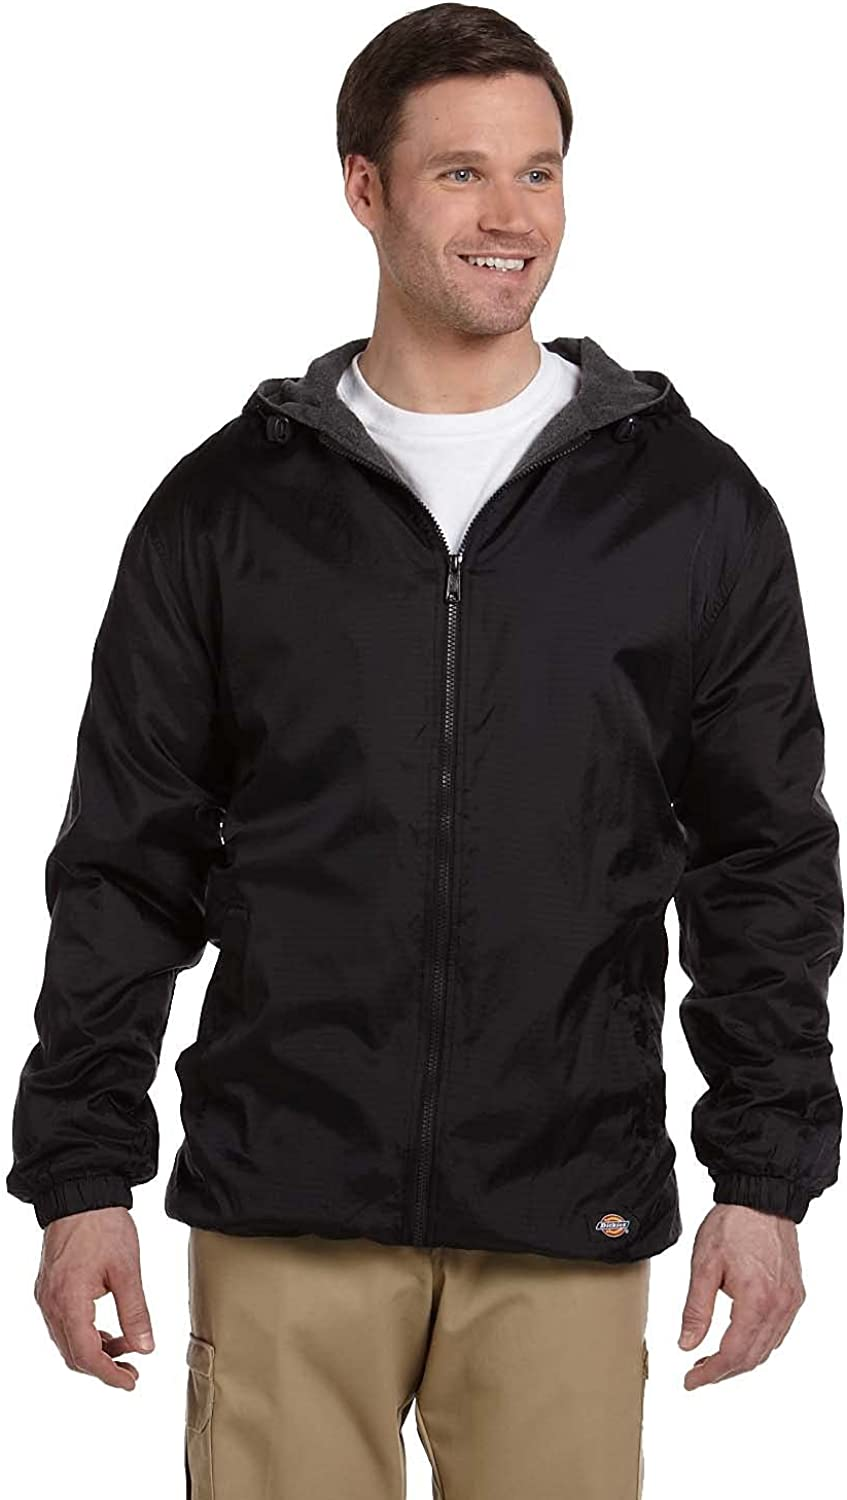 Dickies mens Big and Tall Fleece Lined Hooded Jacket